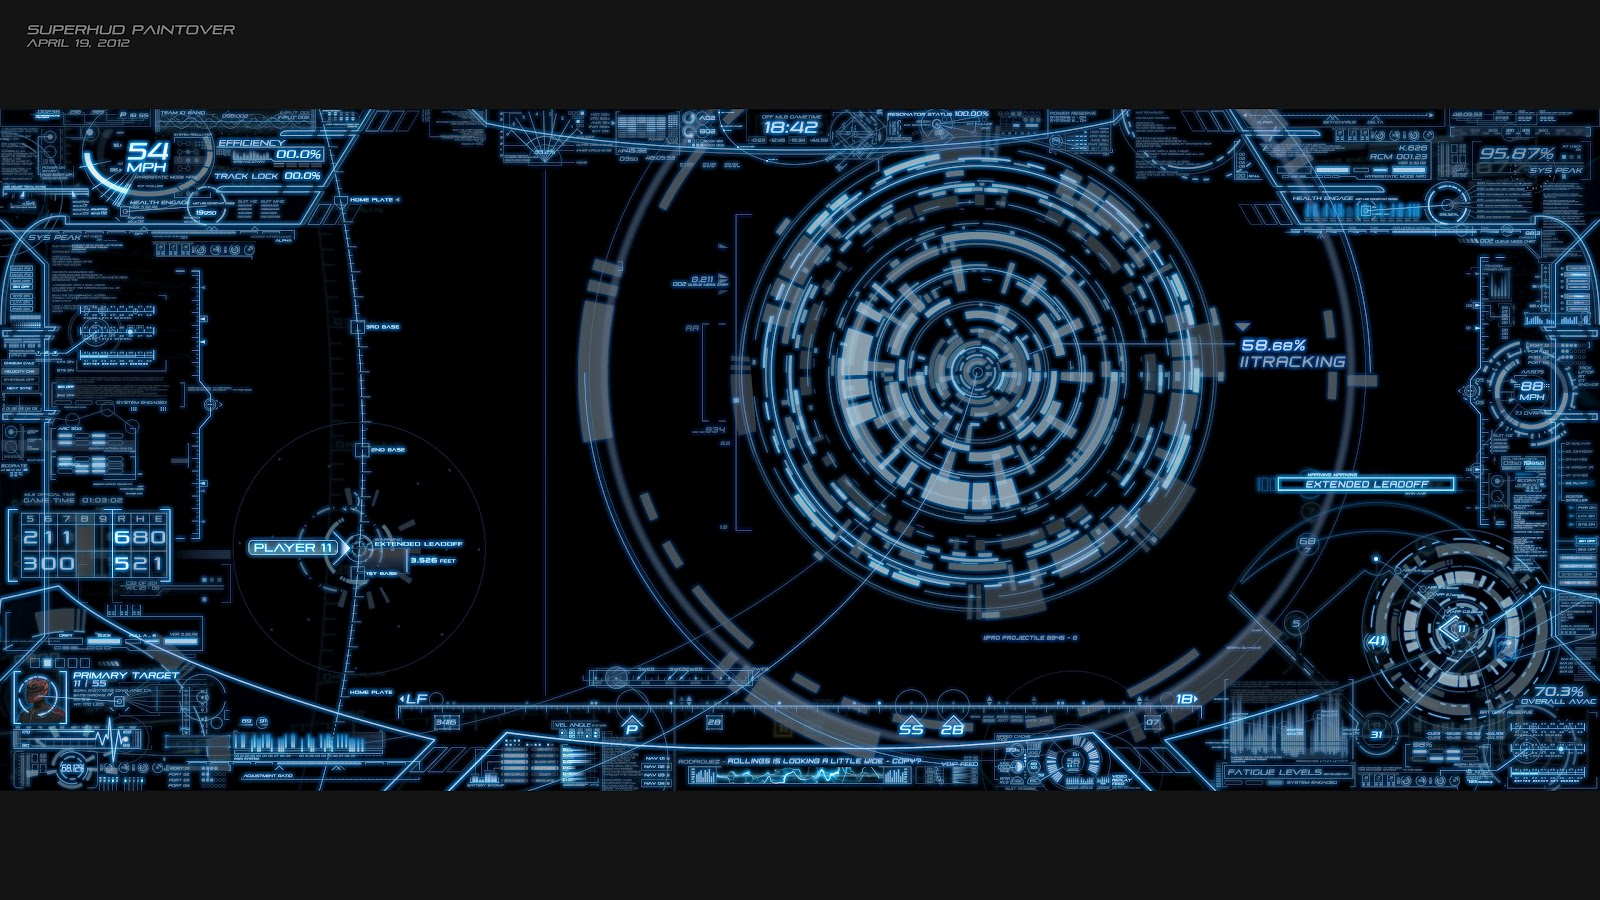 Animated 3d wallpaper jarvis interface - This Page Has Cool Animated Hud Elements Inspired By Tron2 Imagine All These Layers Rotating Layered On Top Of One Another Cool Effect Videos